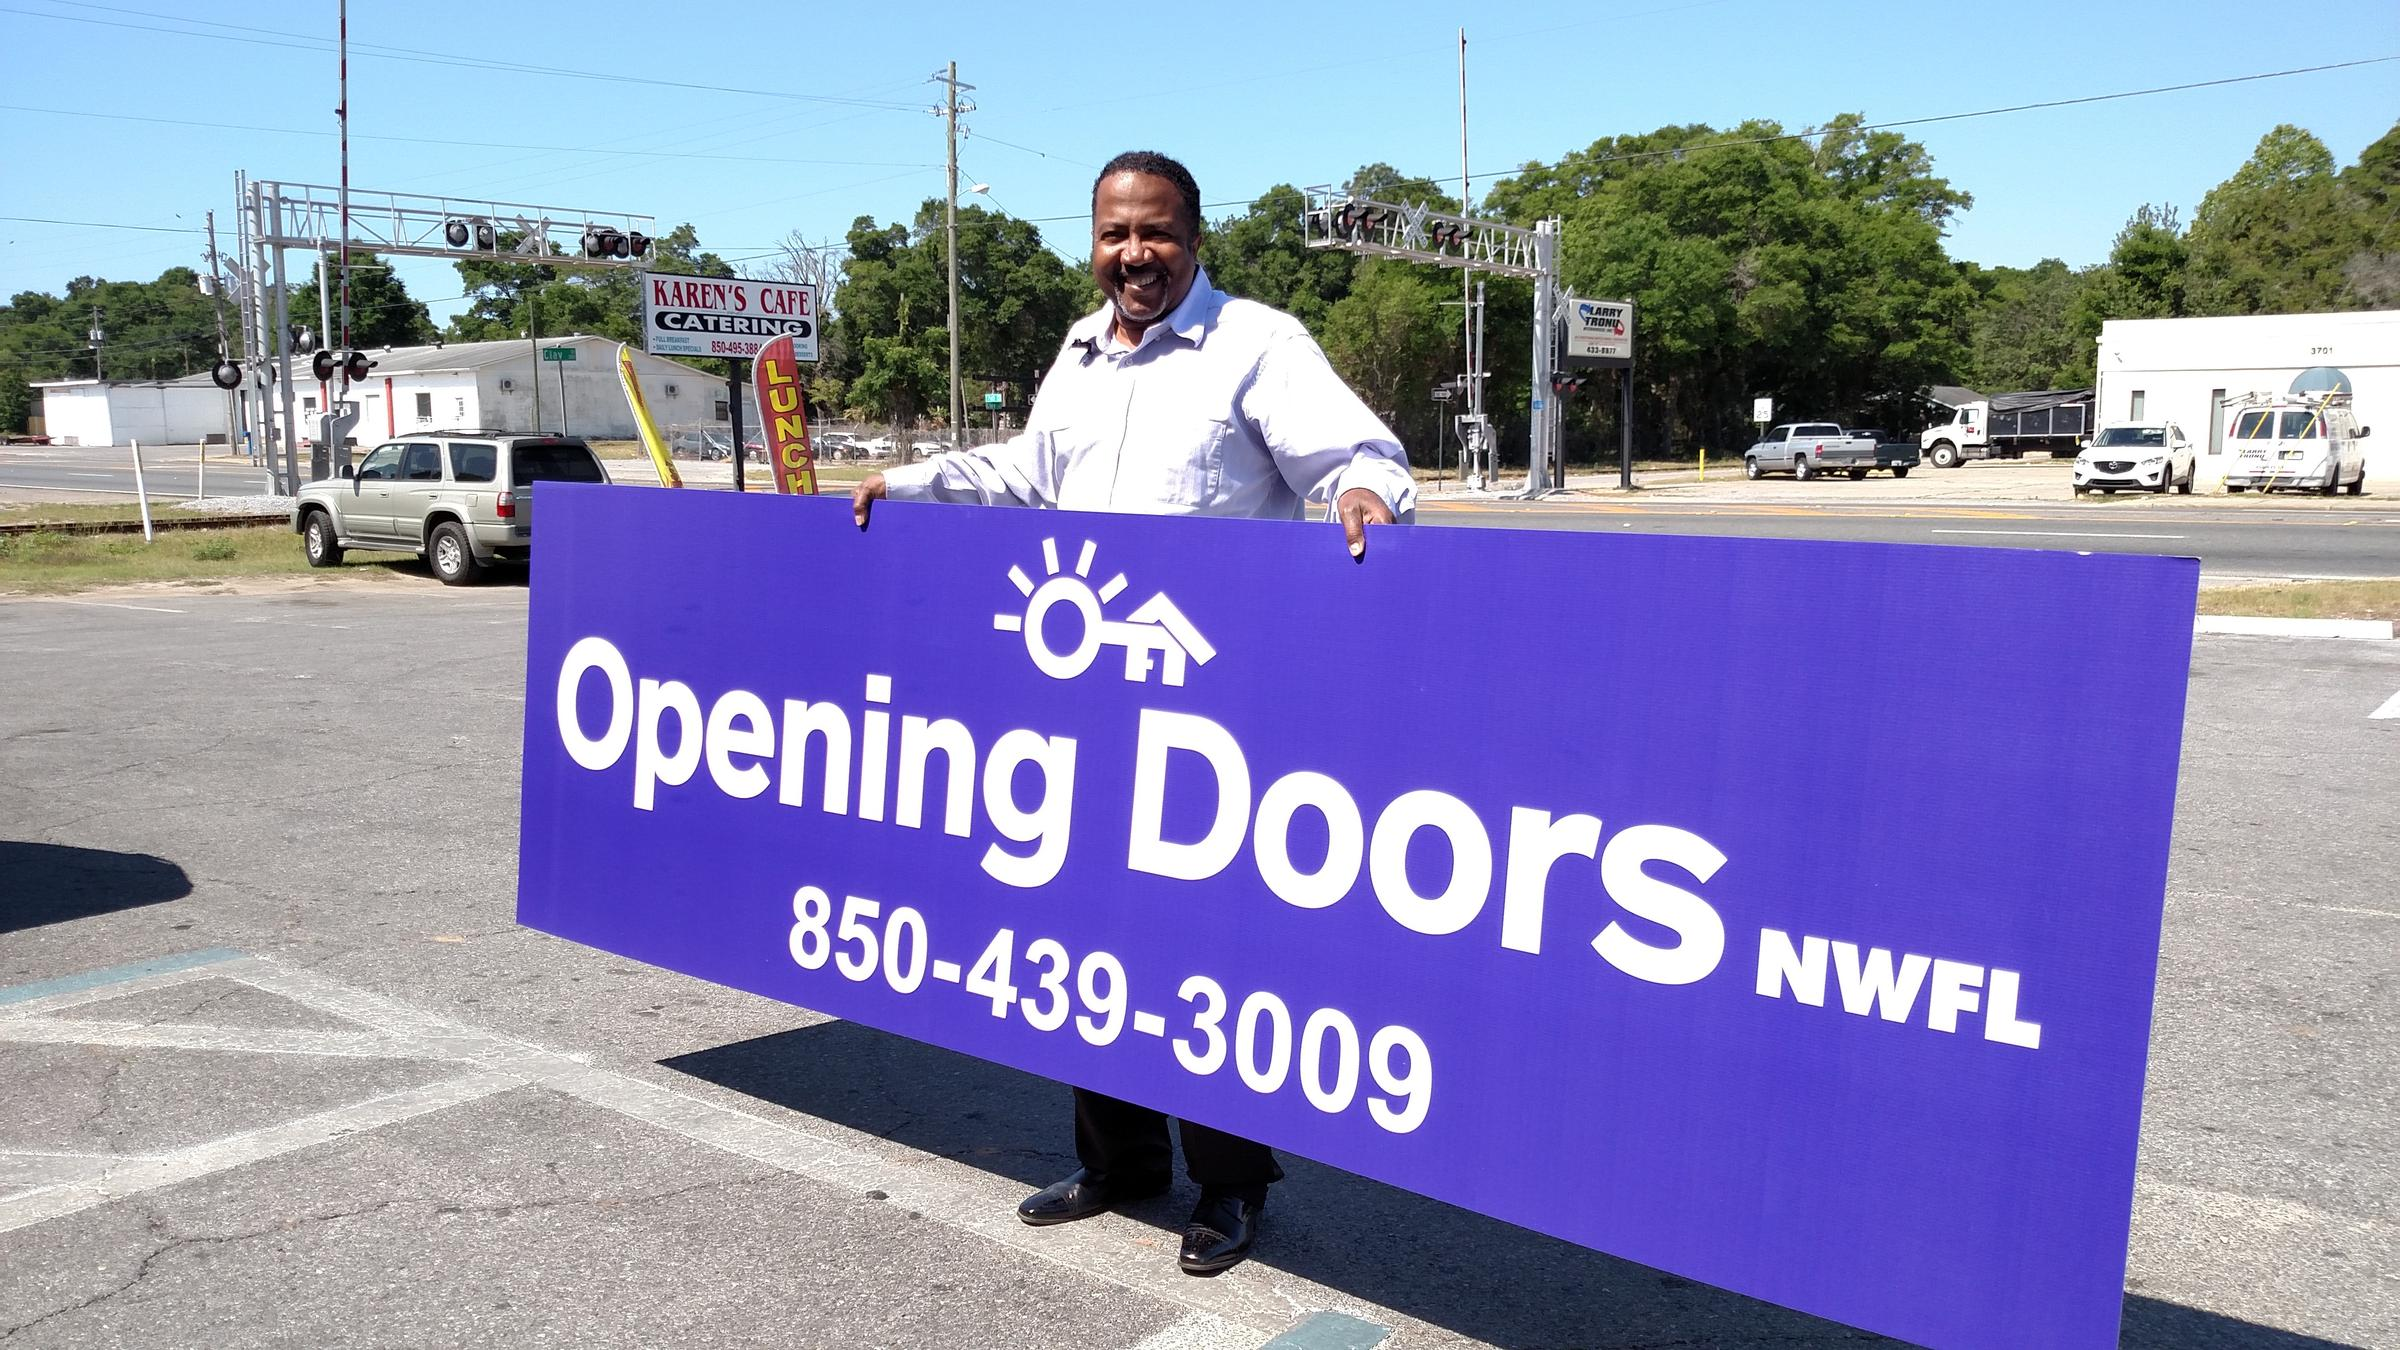 Homeless Agency Reintroduced As u0027Opening Doors Northwest Floridau0027 & Homeless Agency Reintroduced As u0027Opening Doors Northwest Floridau0027 | WUWF